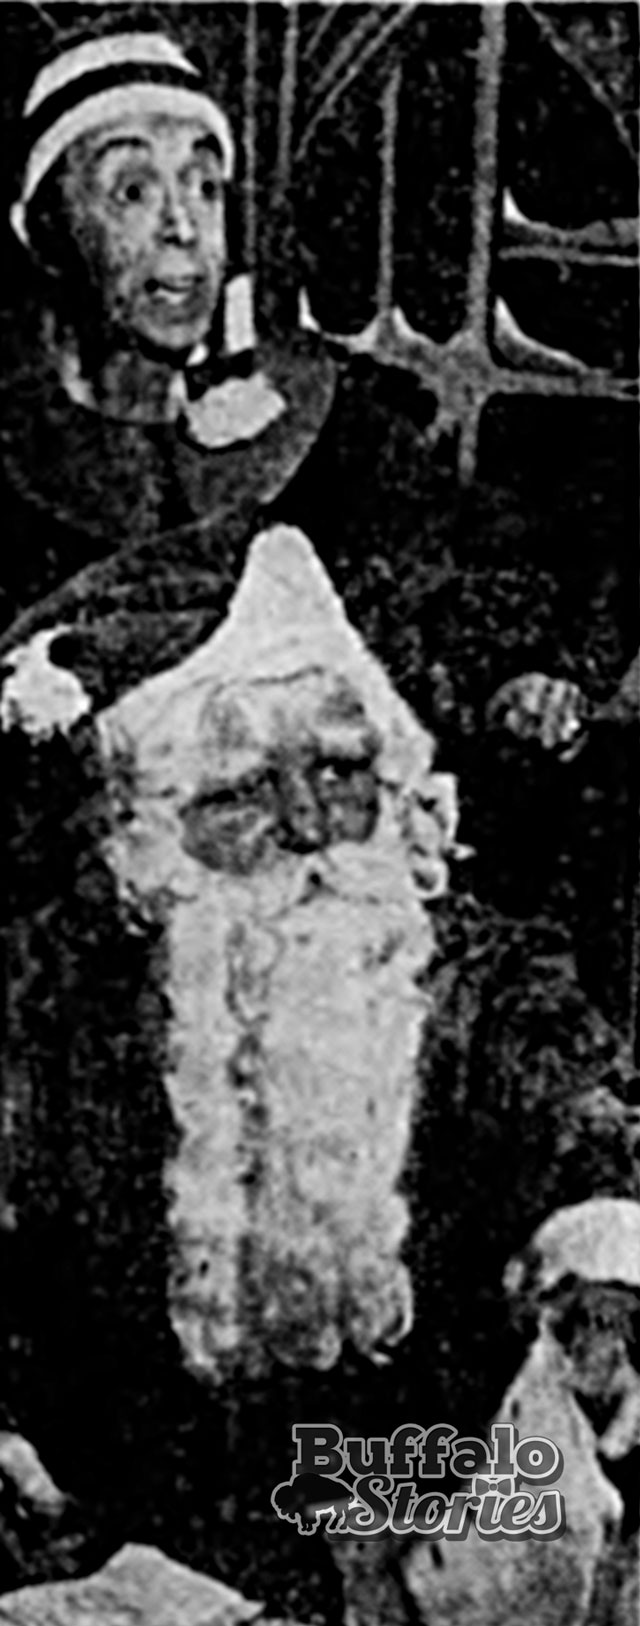 Eisenberger as Forgetful and Peters as Santa. (Buffalo Stories archives/Steve Cichon collection)